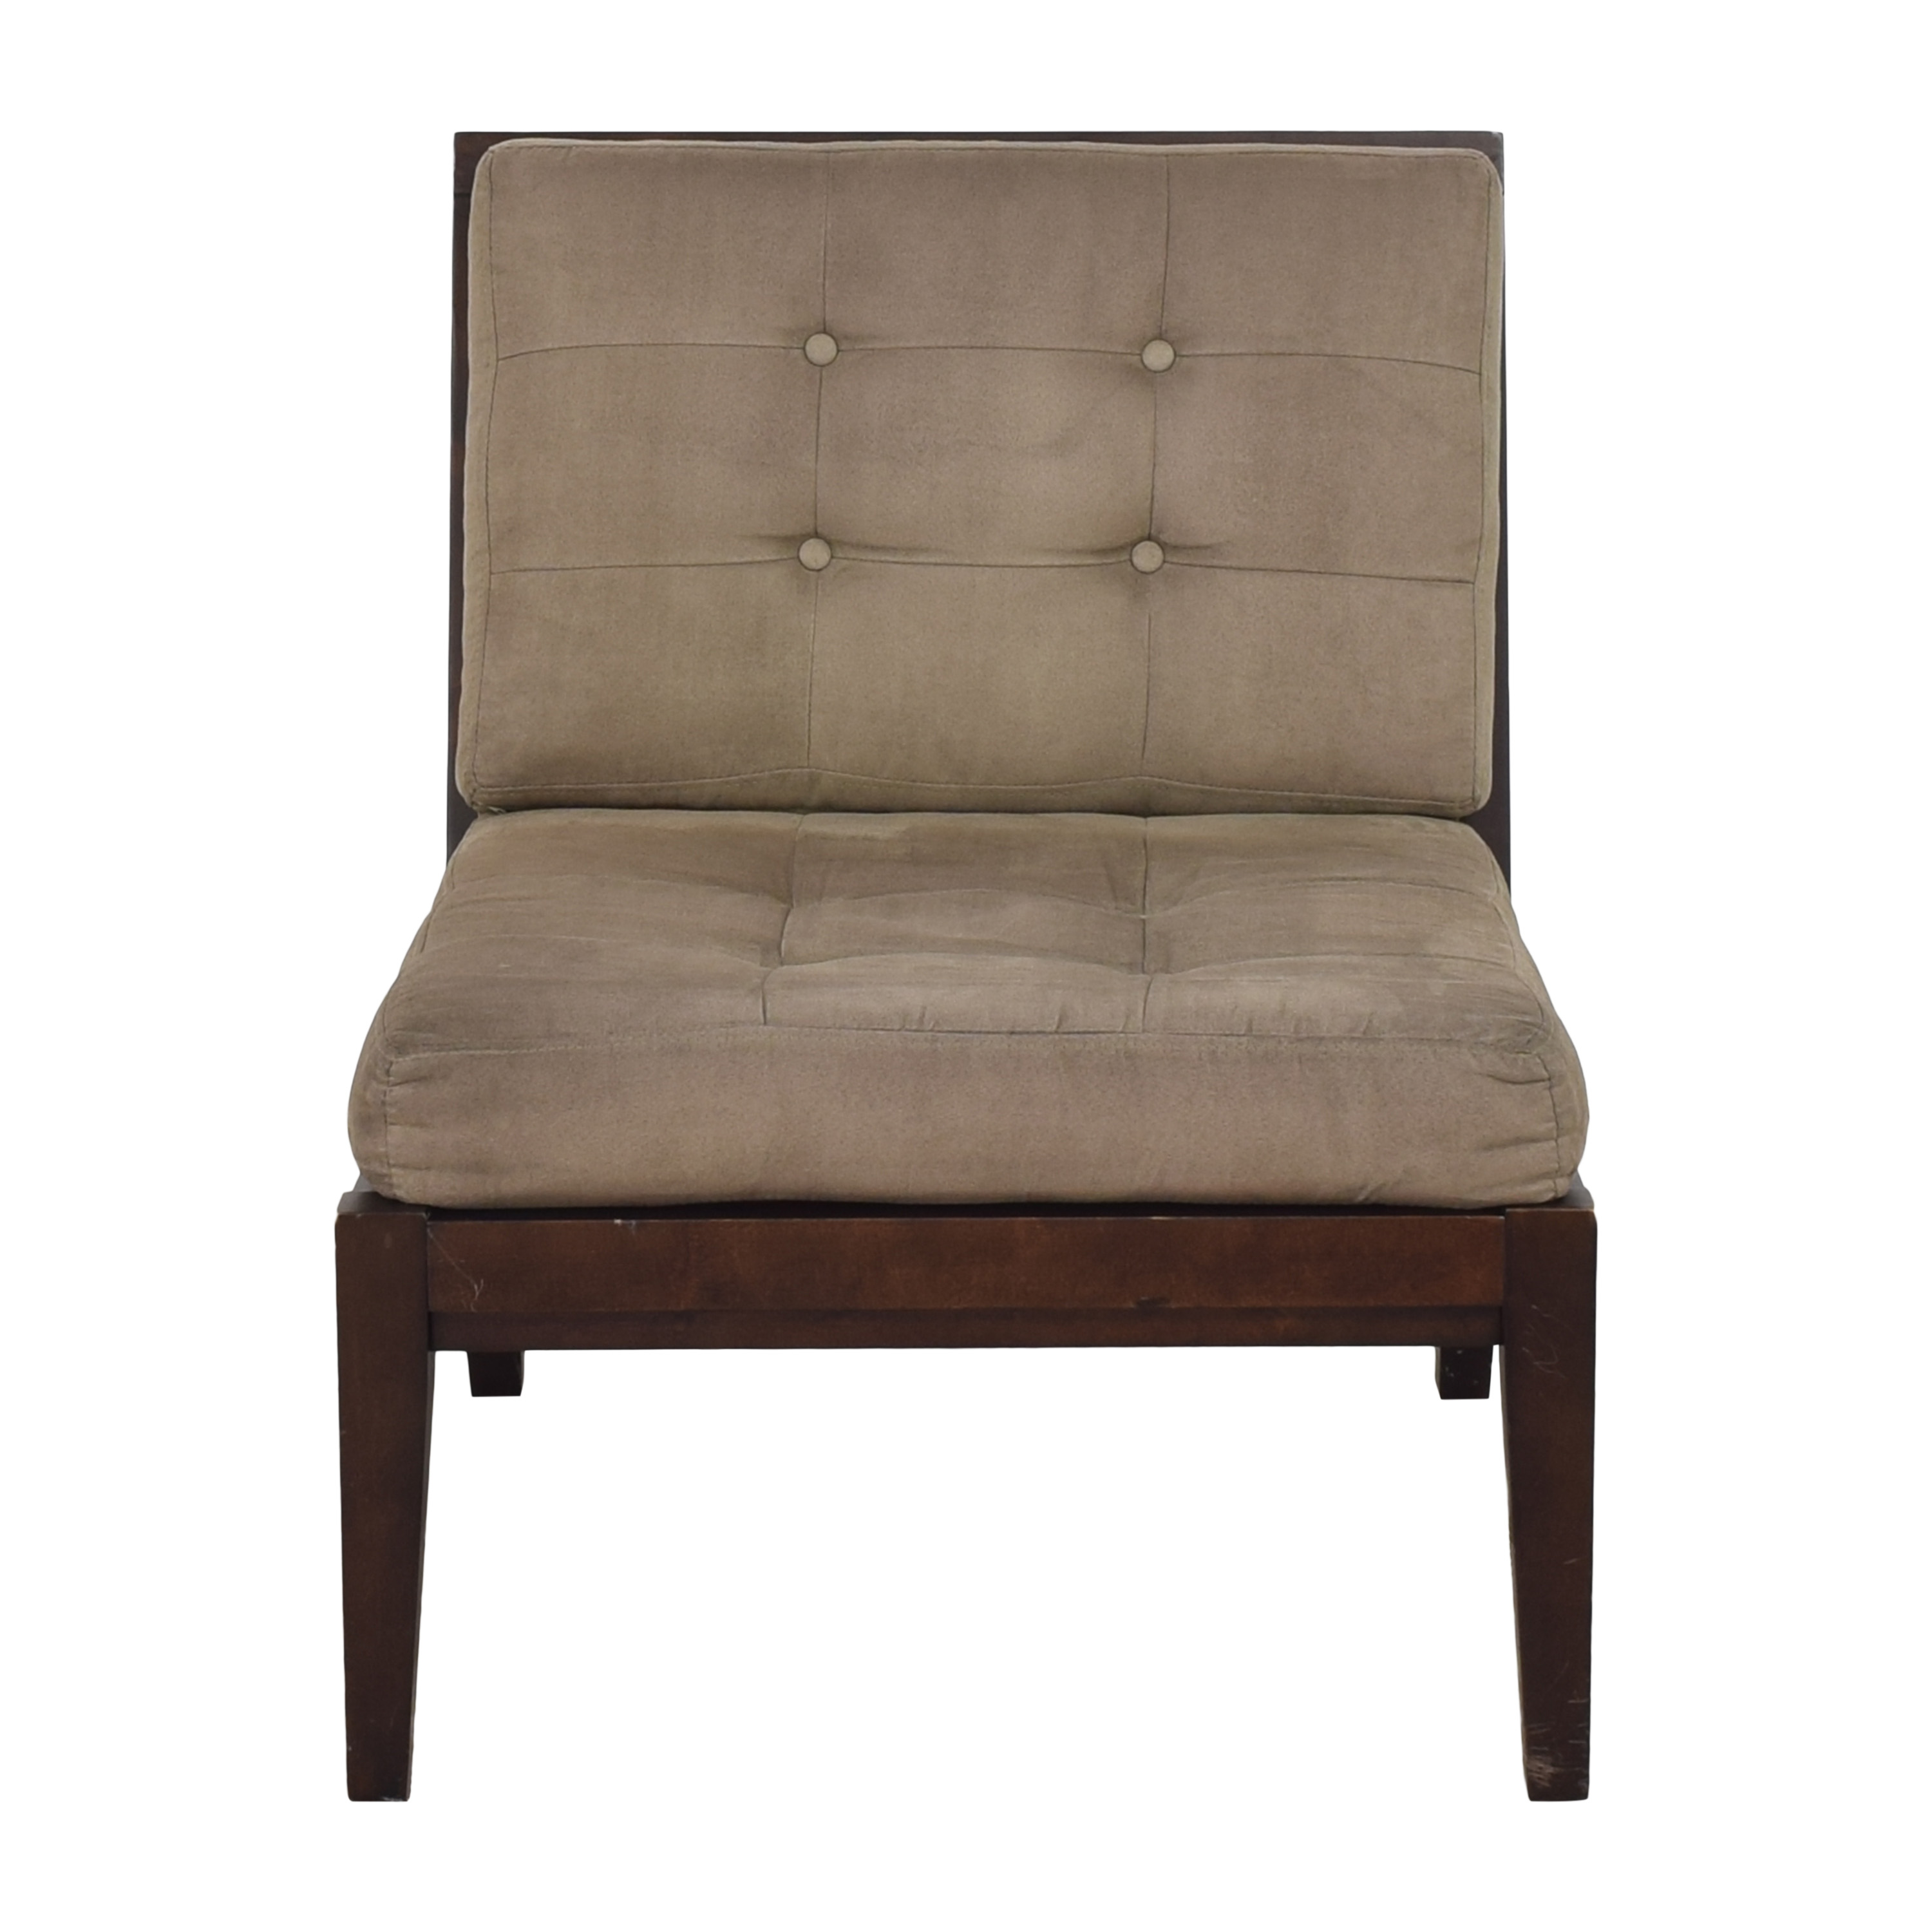 Crate & Barrel Crate & Barrel Tufted Lounge Chair ma